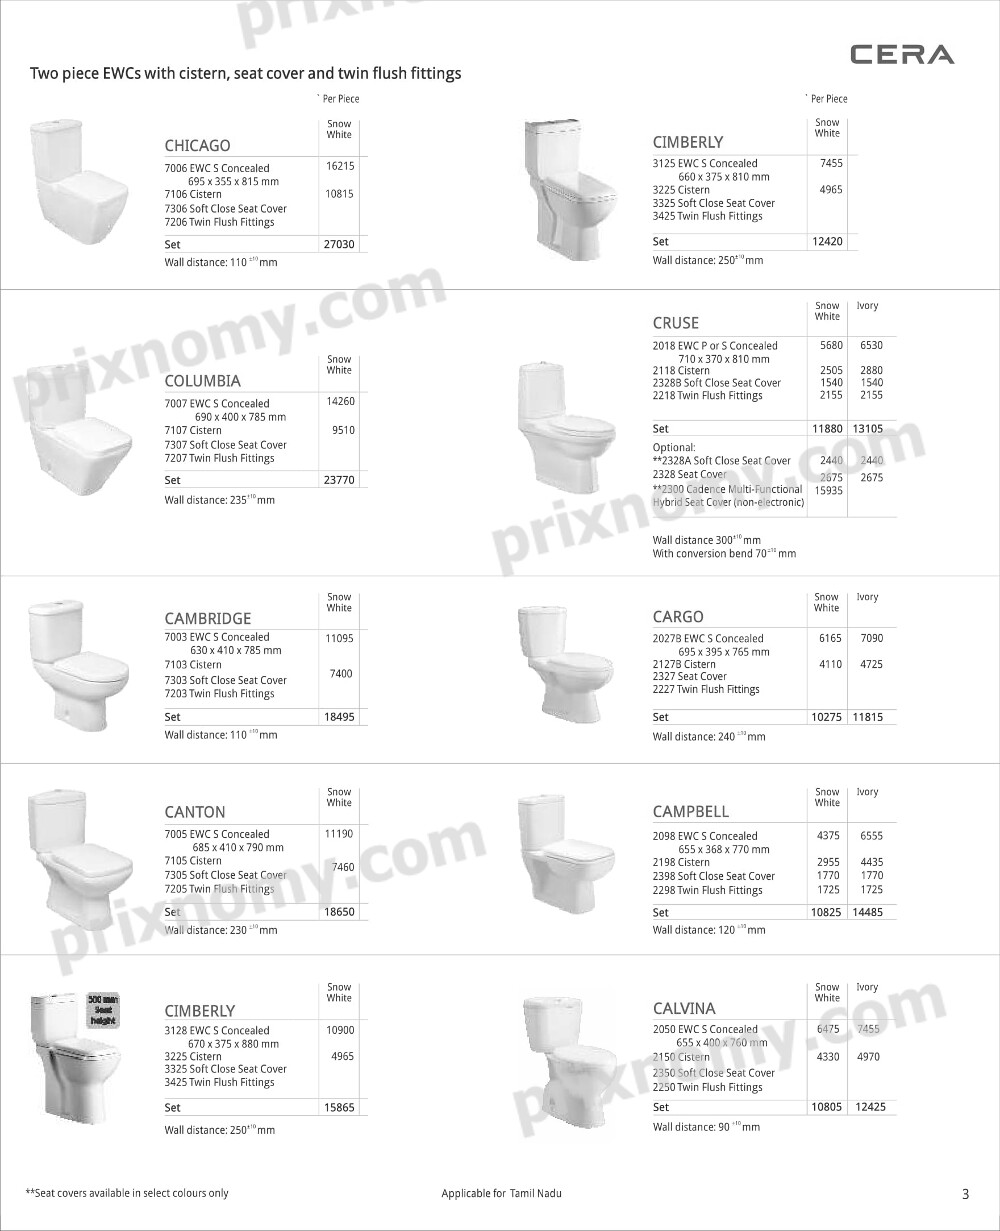 Cera bathroom fittings price list - Seat Cover And Twin Flush Fittings Supplier Two Piece Ewcs With Cistern Supplier Seat